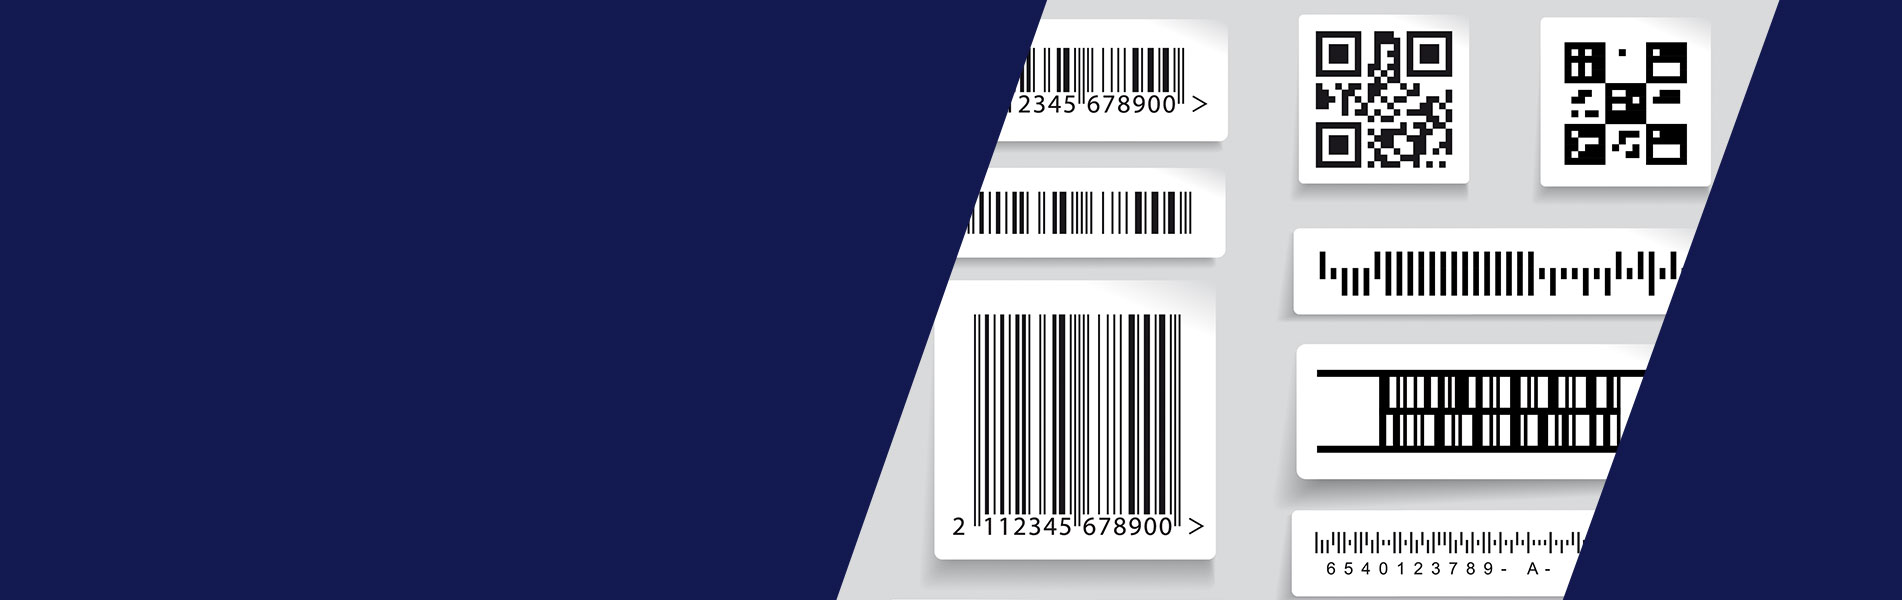 Using Variable Barcode - Acro Labels